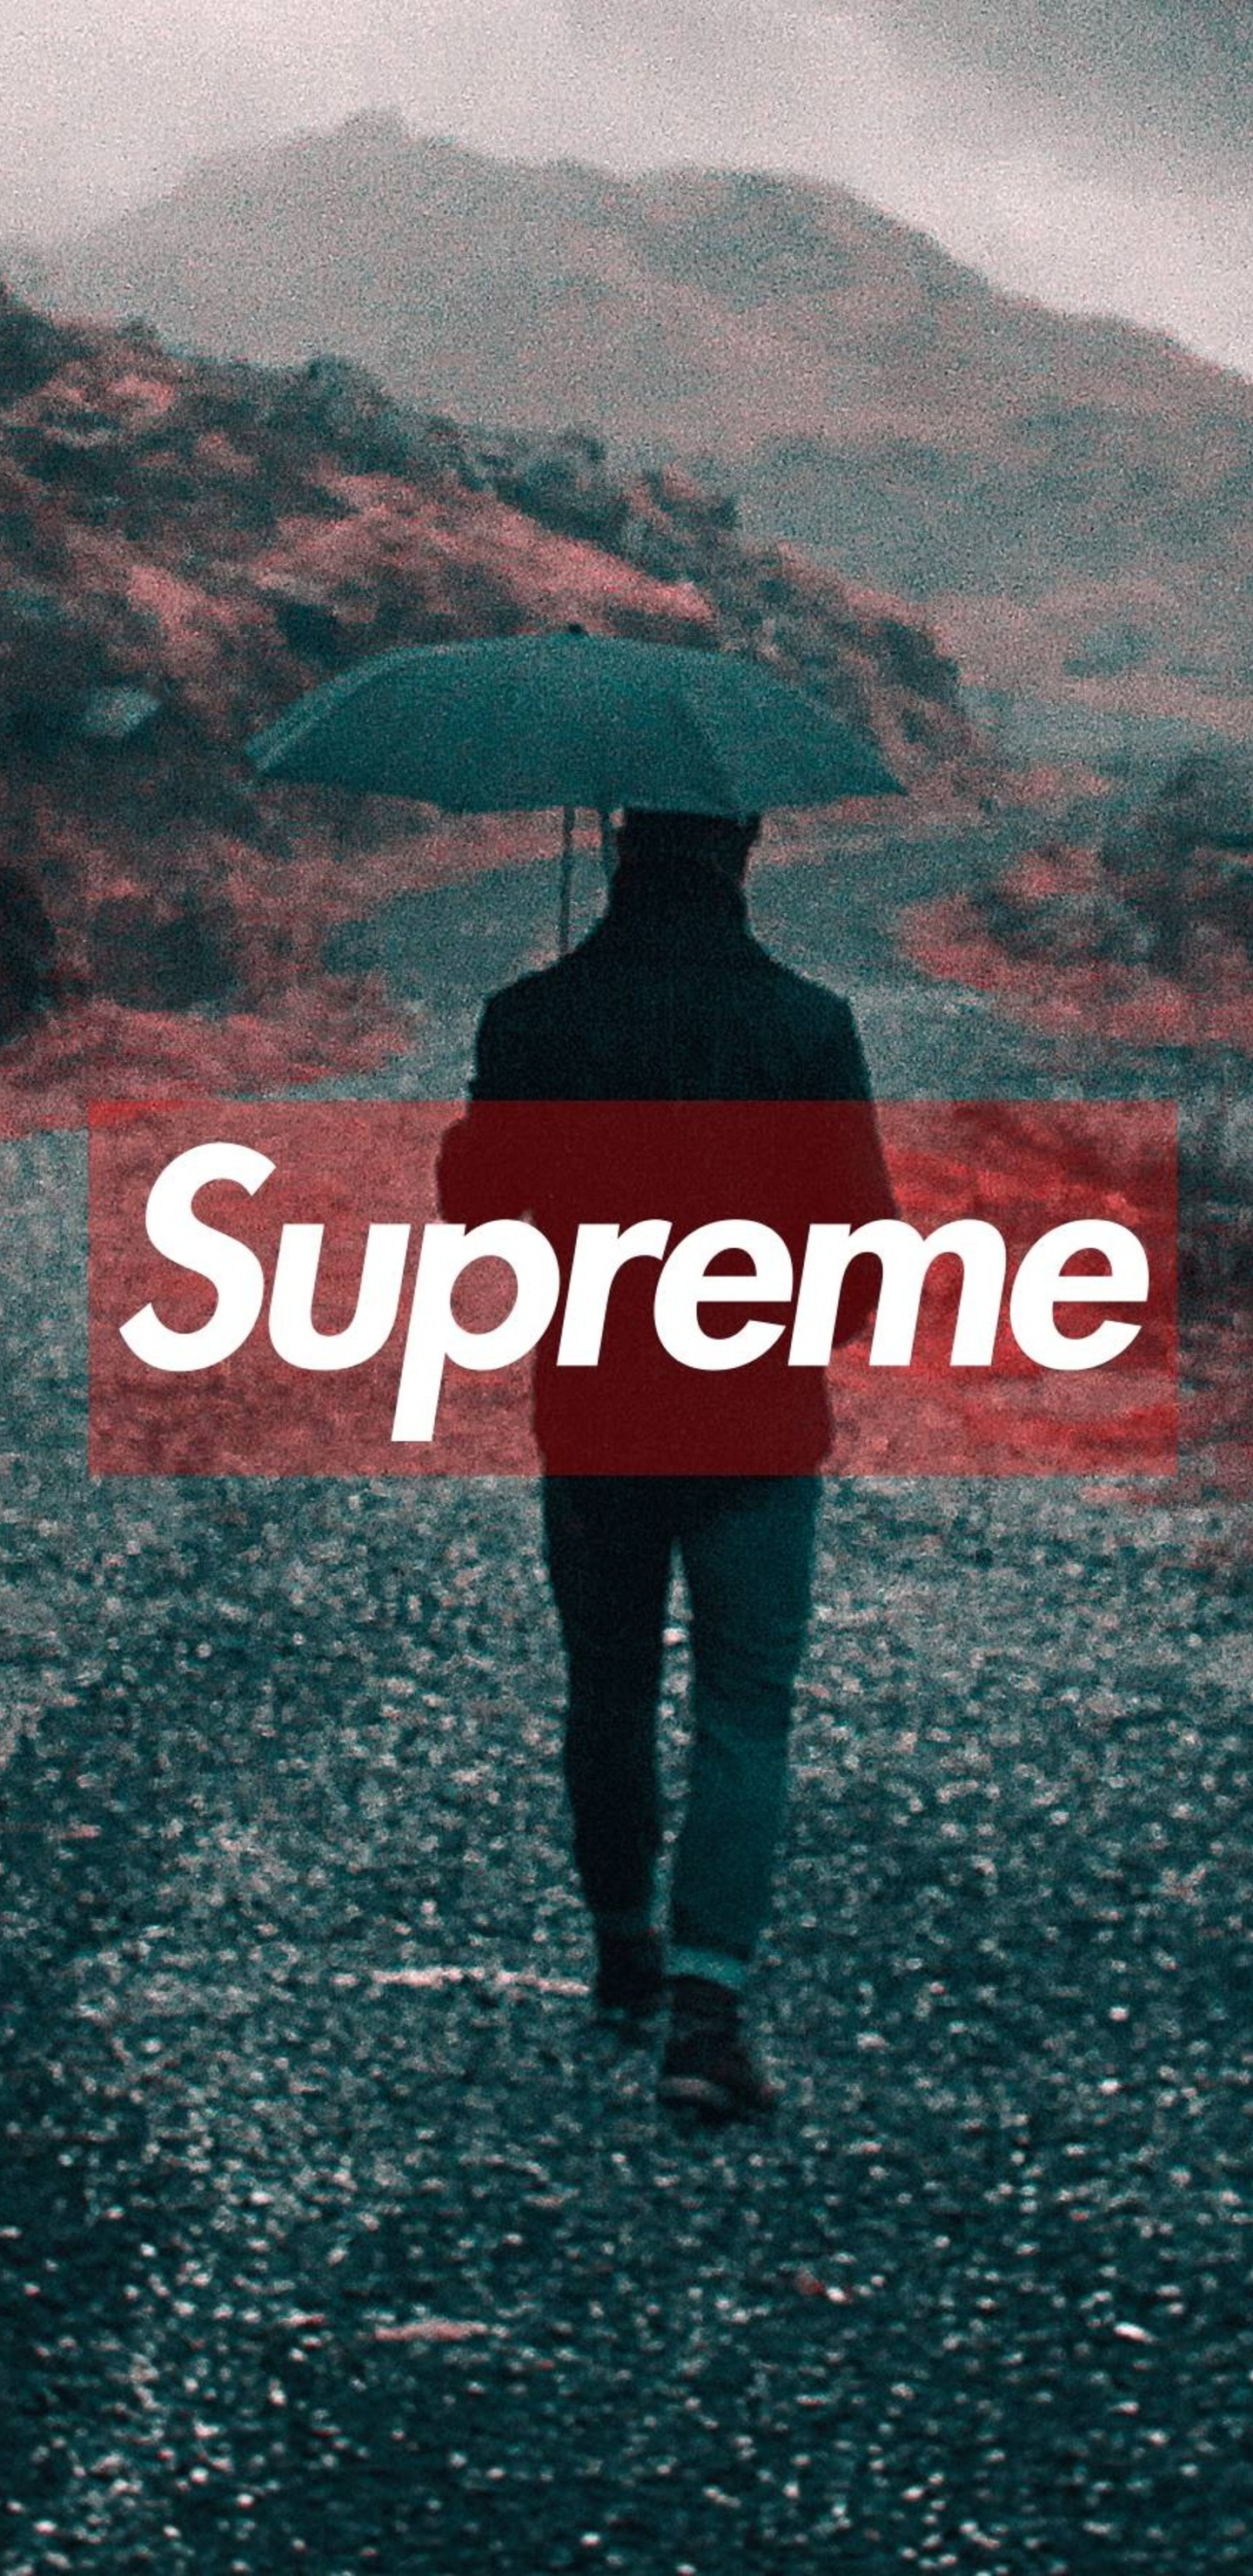 1440x2960 supreme samsung galaxy note 9 8 s9 s8 s8 qhd - Samsung s9 wallpaper 4k ...